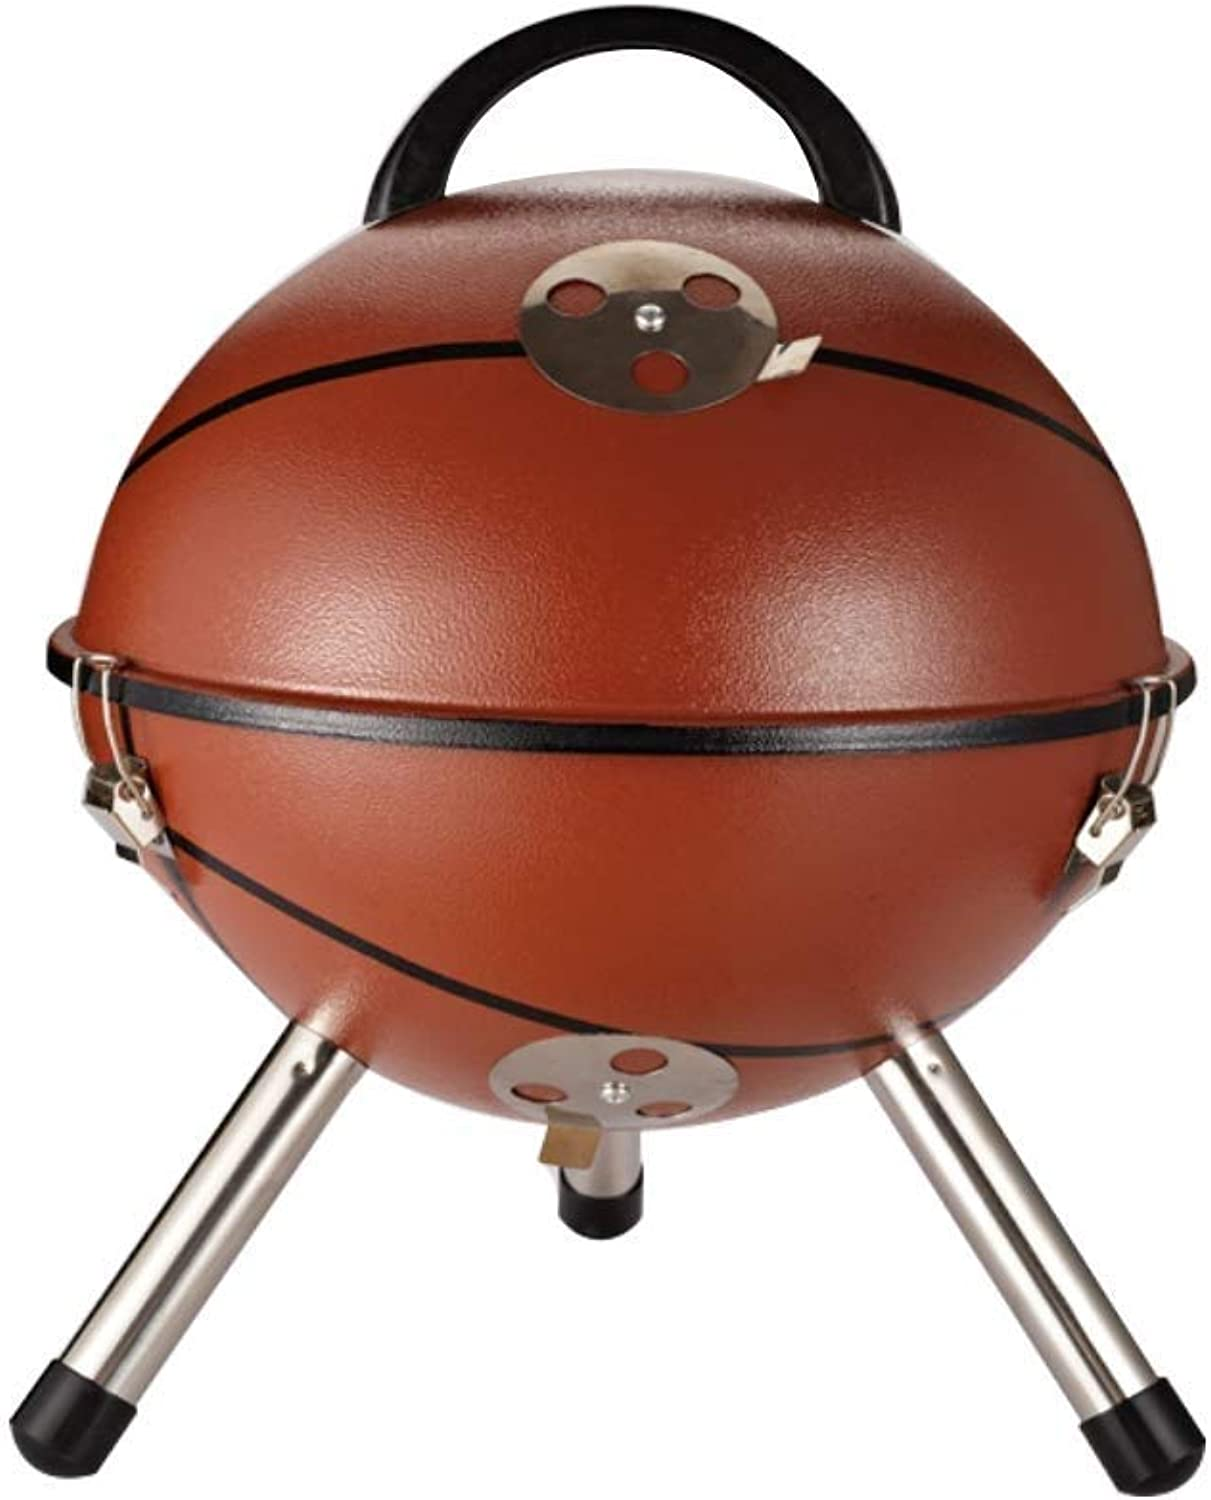 BBQ Supplies Barbecue Creative Small Outdoor Grills Spherical Charcoal 3-5 People Thickened Portable Multi-Tools Family Friends Wild Camping Picnic Garden Party Fishing Garden 3 Styles Optional